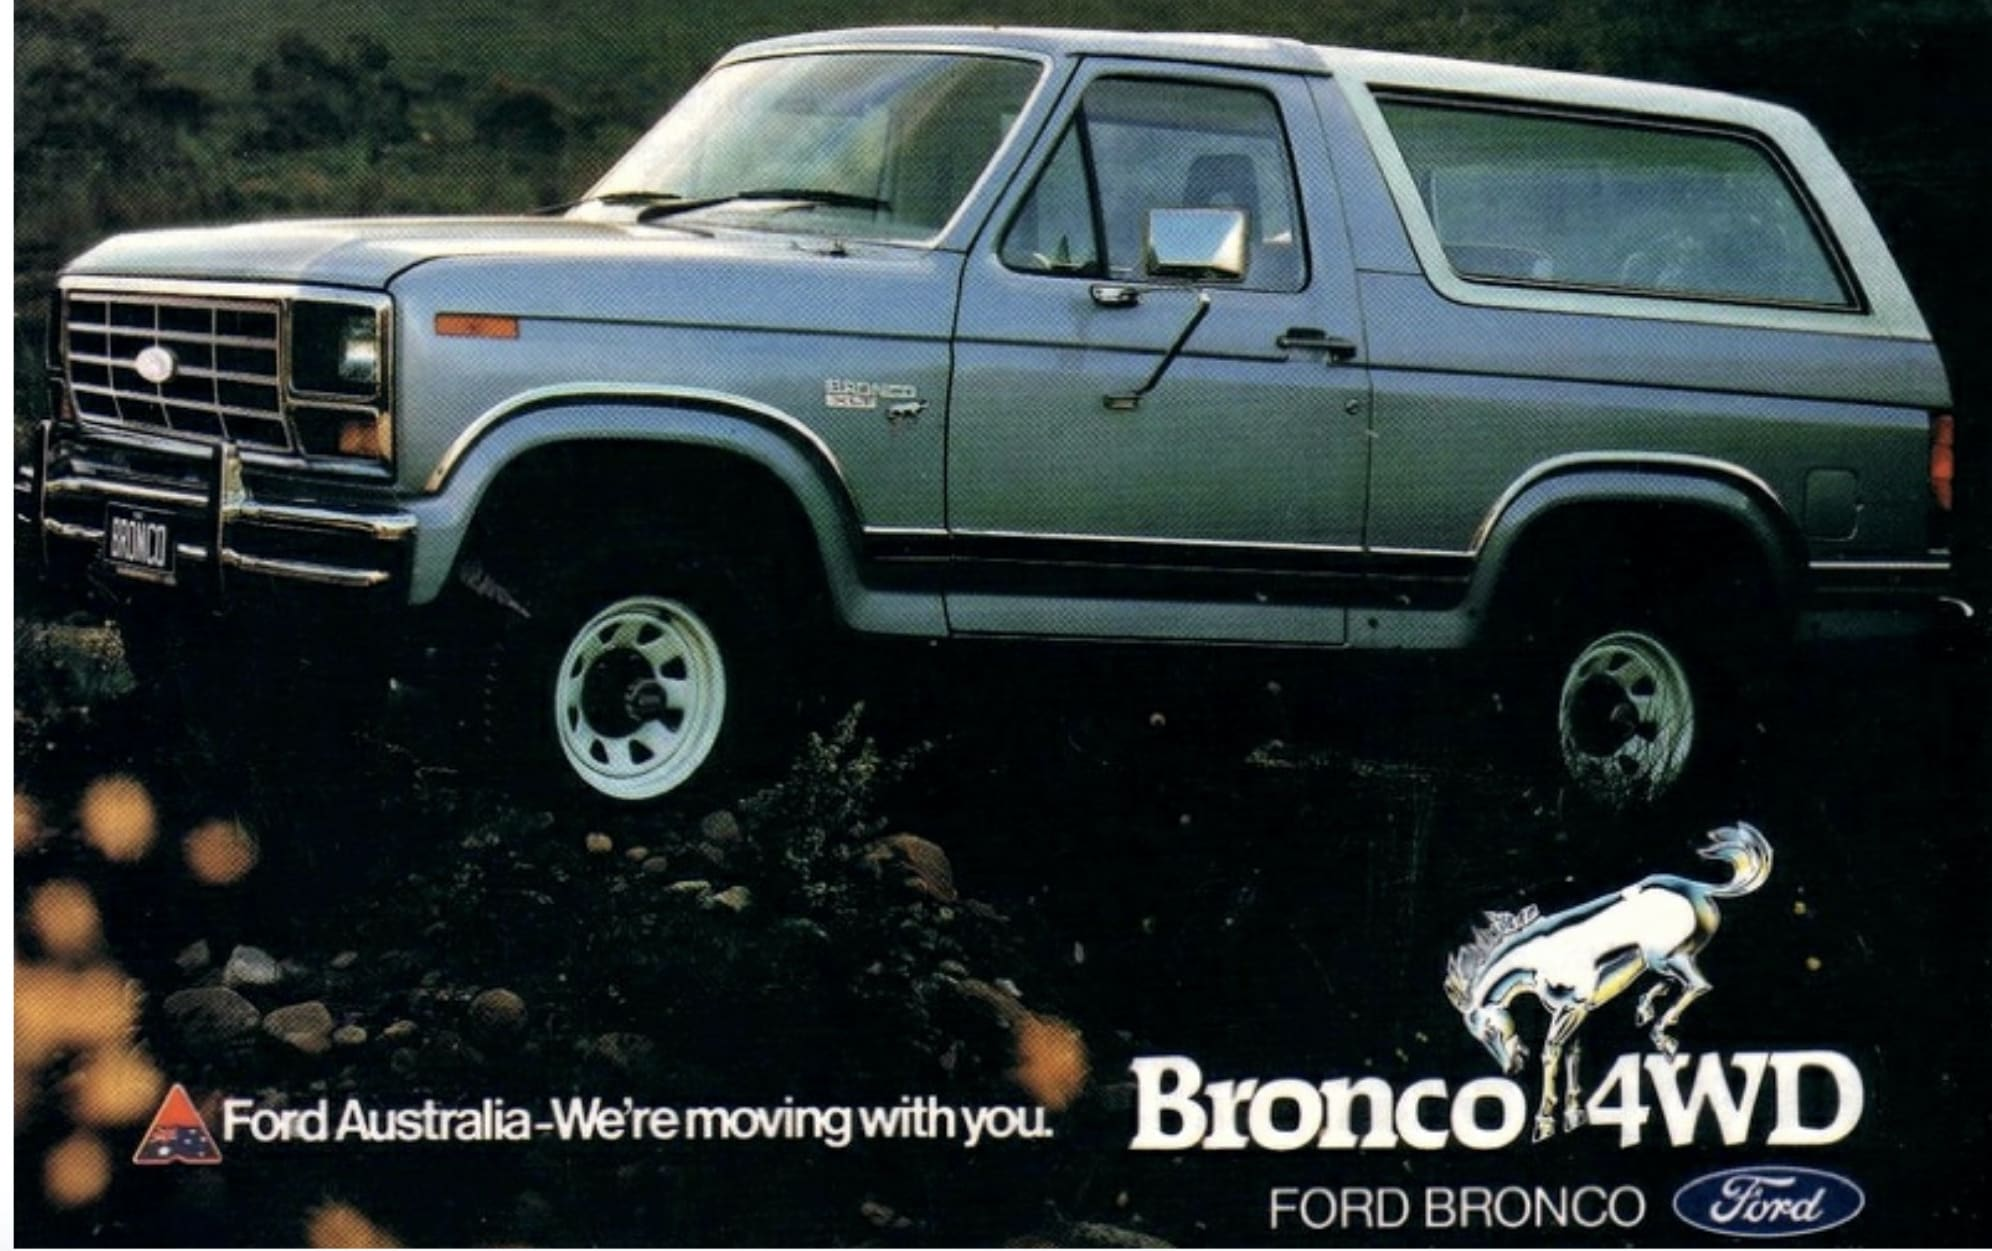 2020 Ford Bronco Teased In New Video Still No Closer To Australia Caradvice